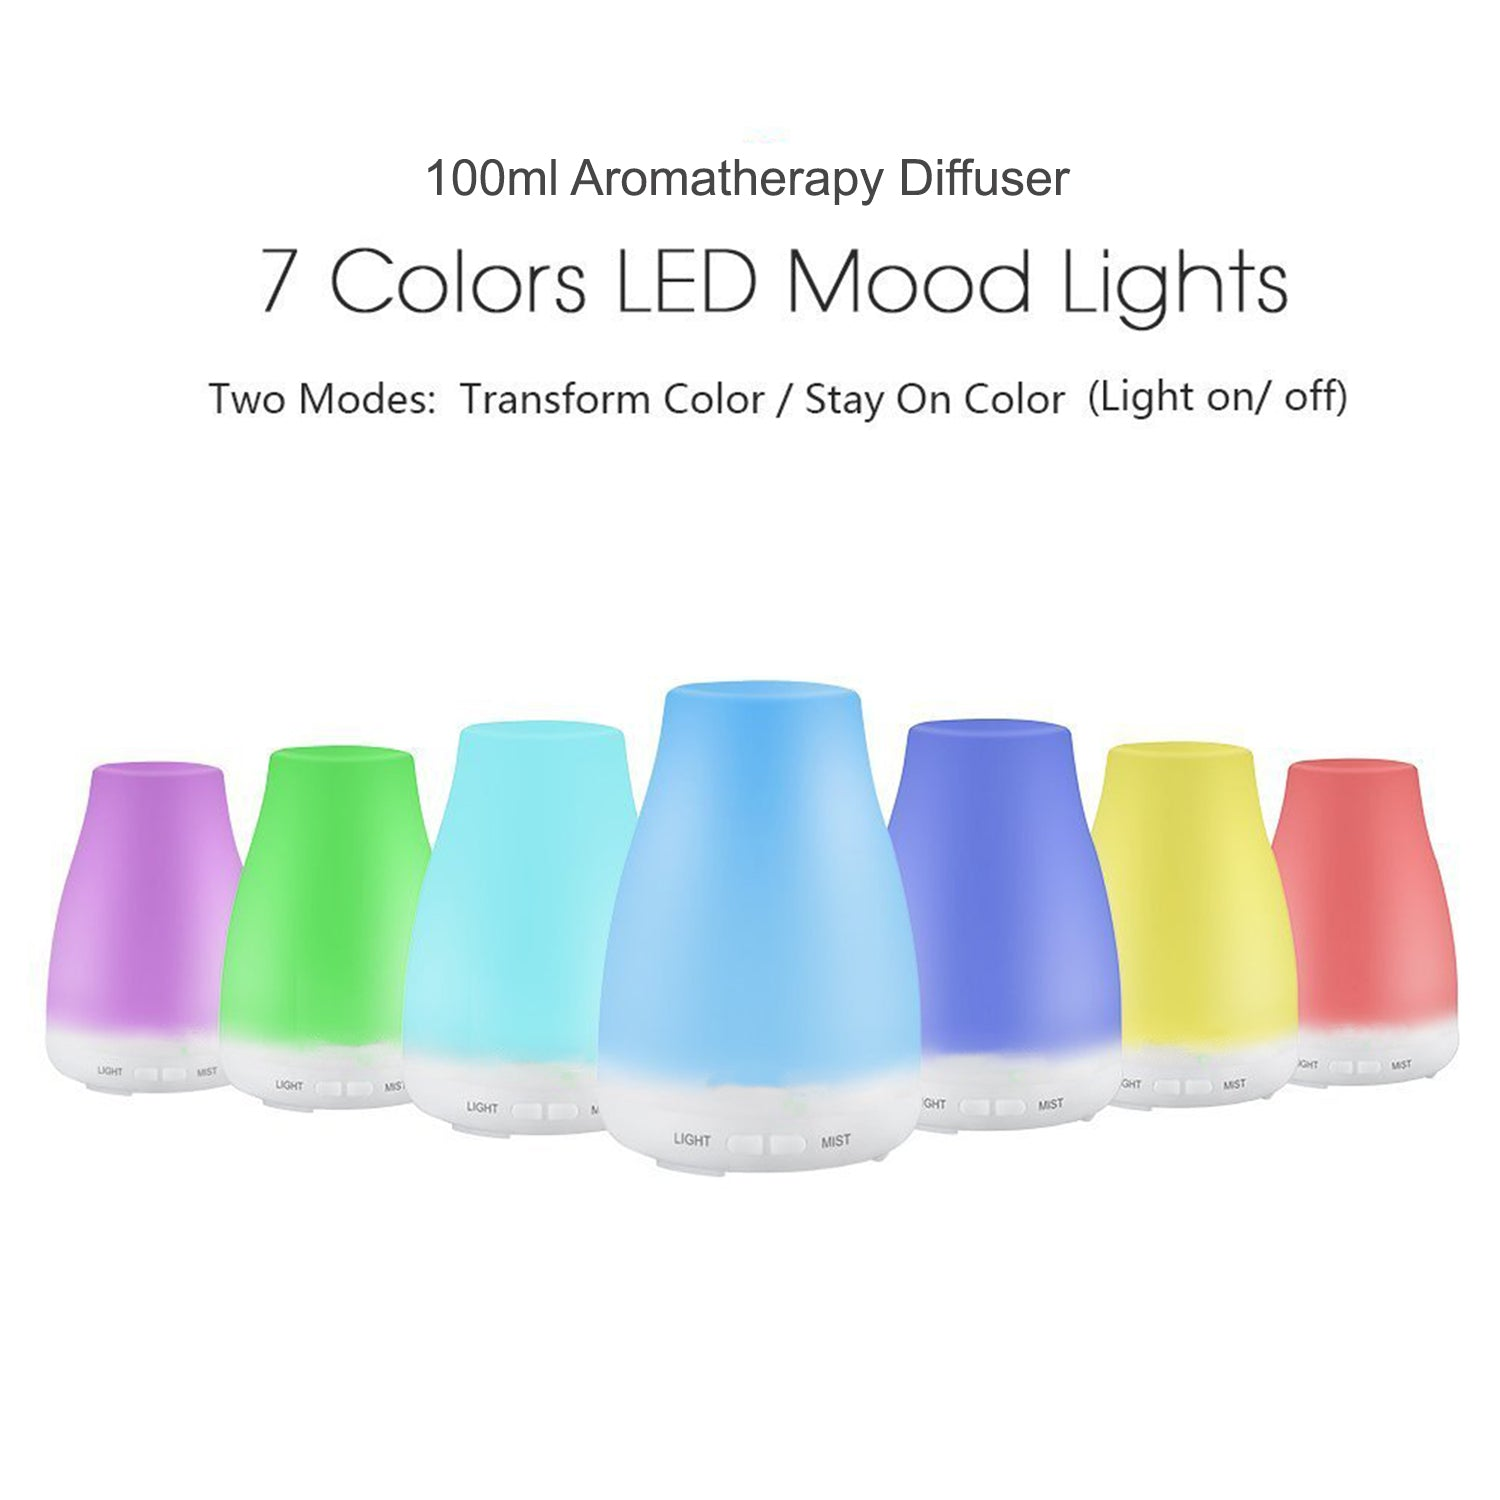 100ml Aromatherapy Diffuser